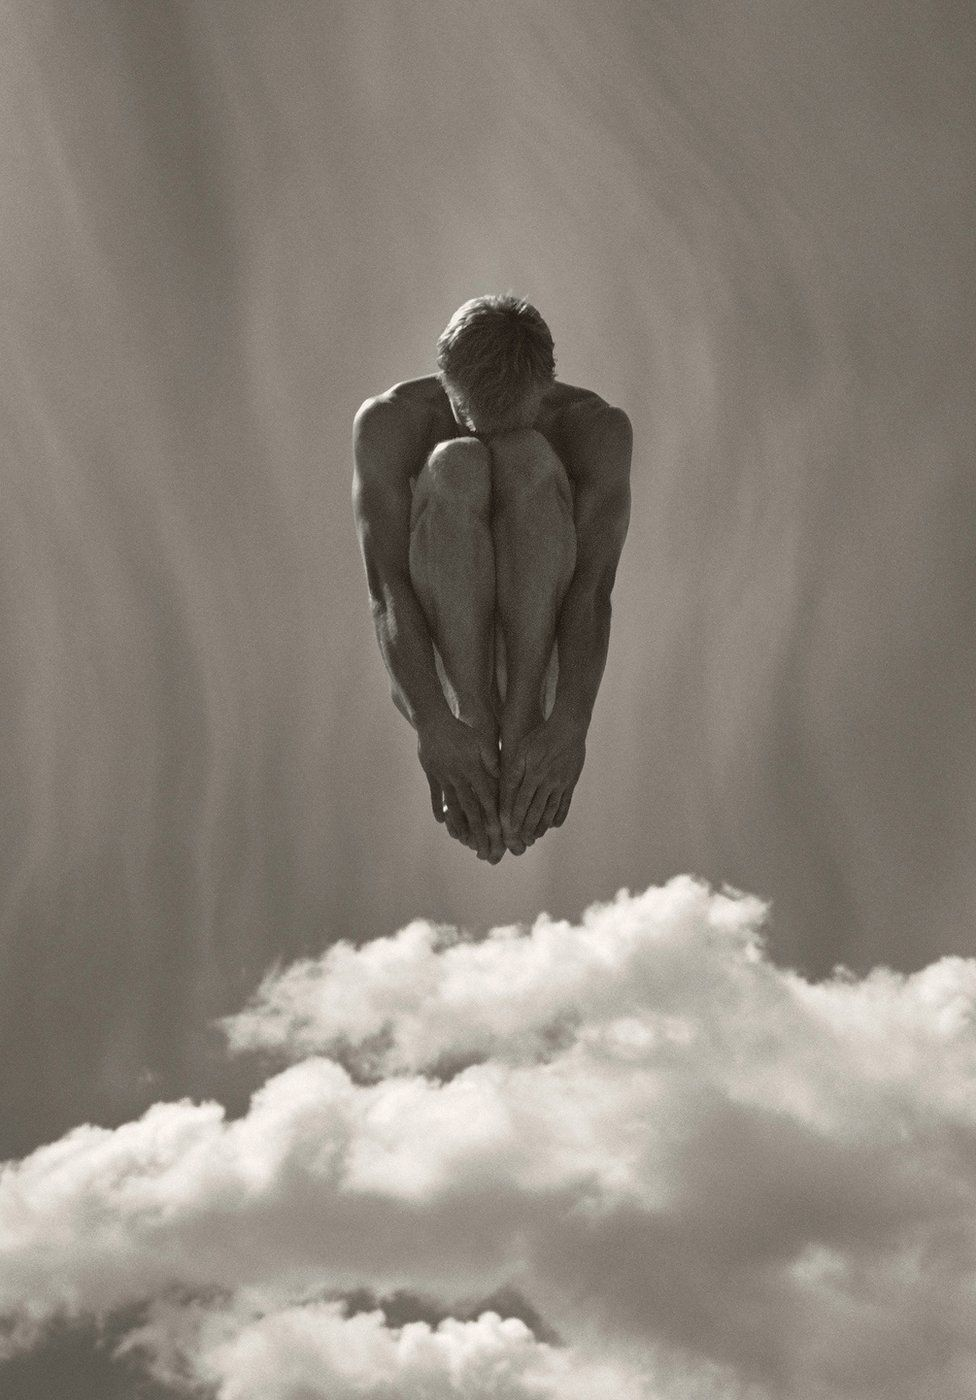 Photograph of a Danish gymnast in the air by Jonathan Anderson and Edwin Low